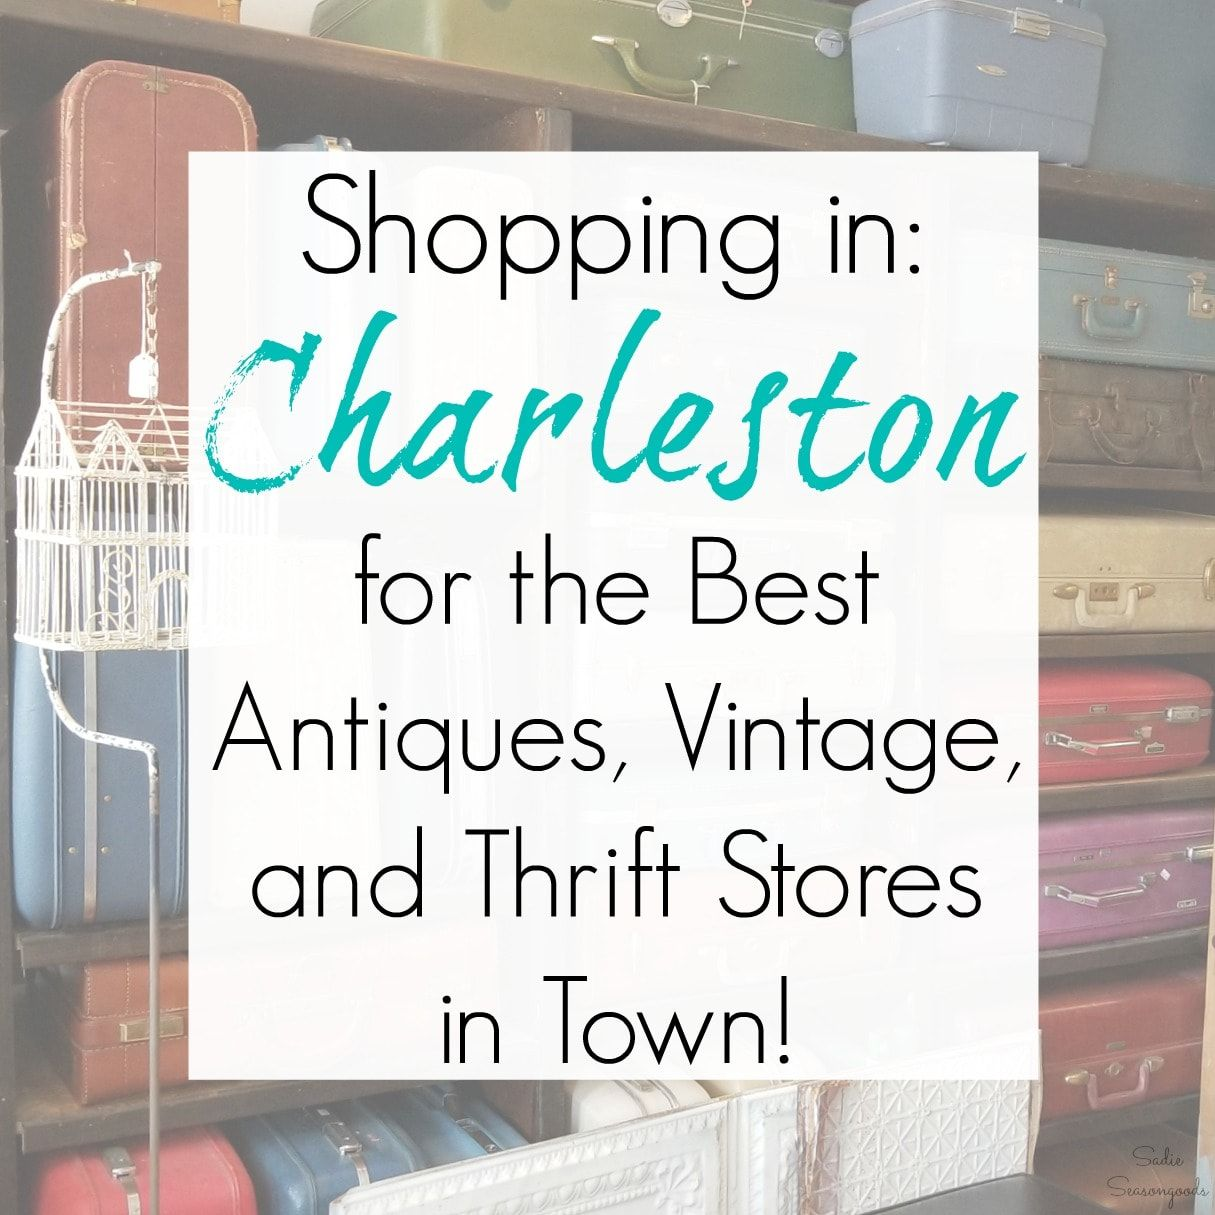 Charleston Sc Antique Stores Thrift Stores And Architectural Salvage Antique Stores Thrifting Thrift Store